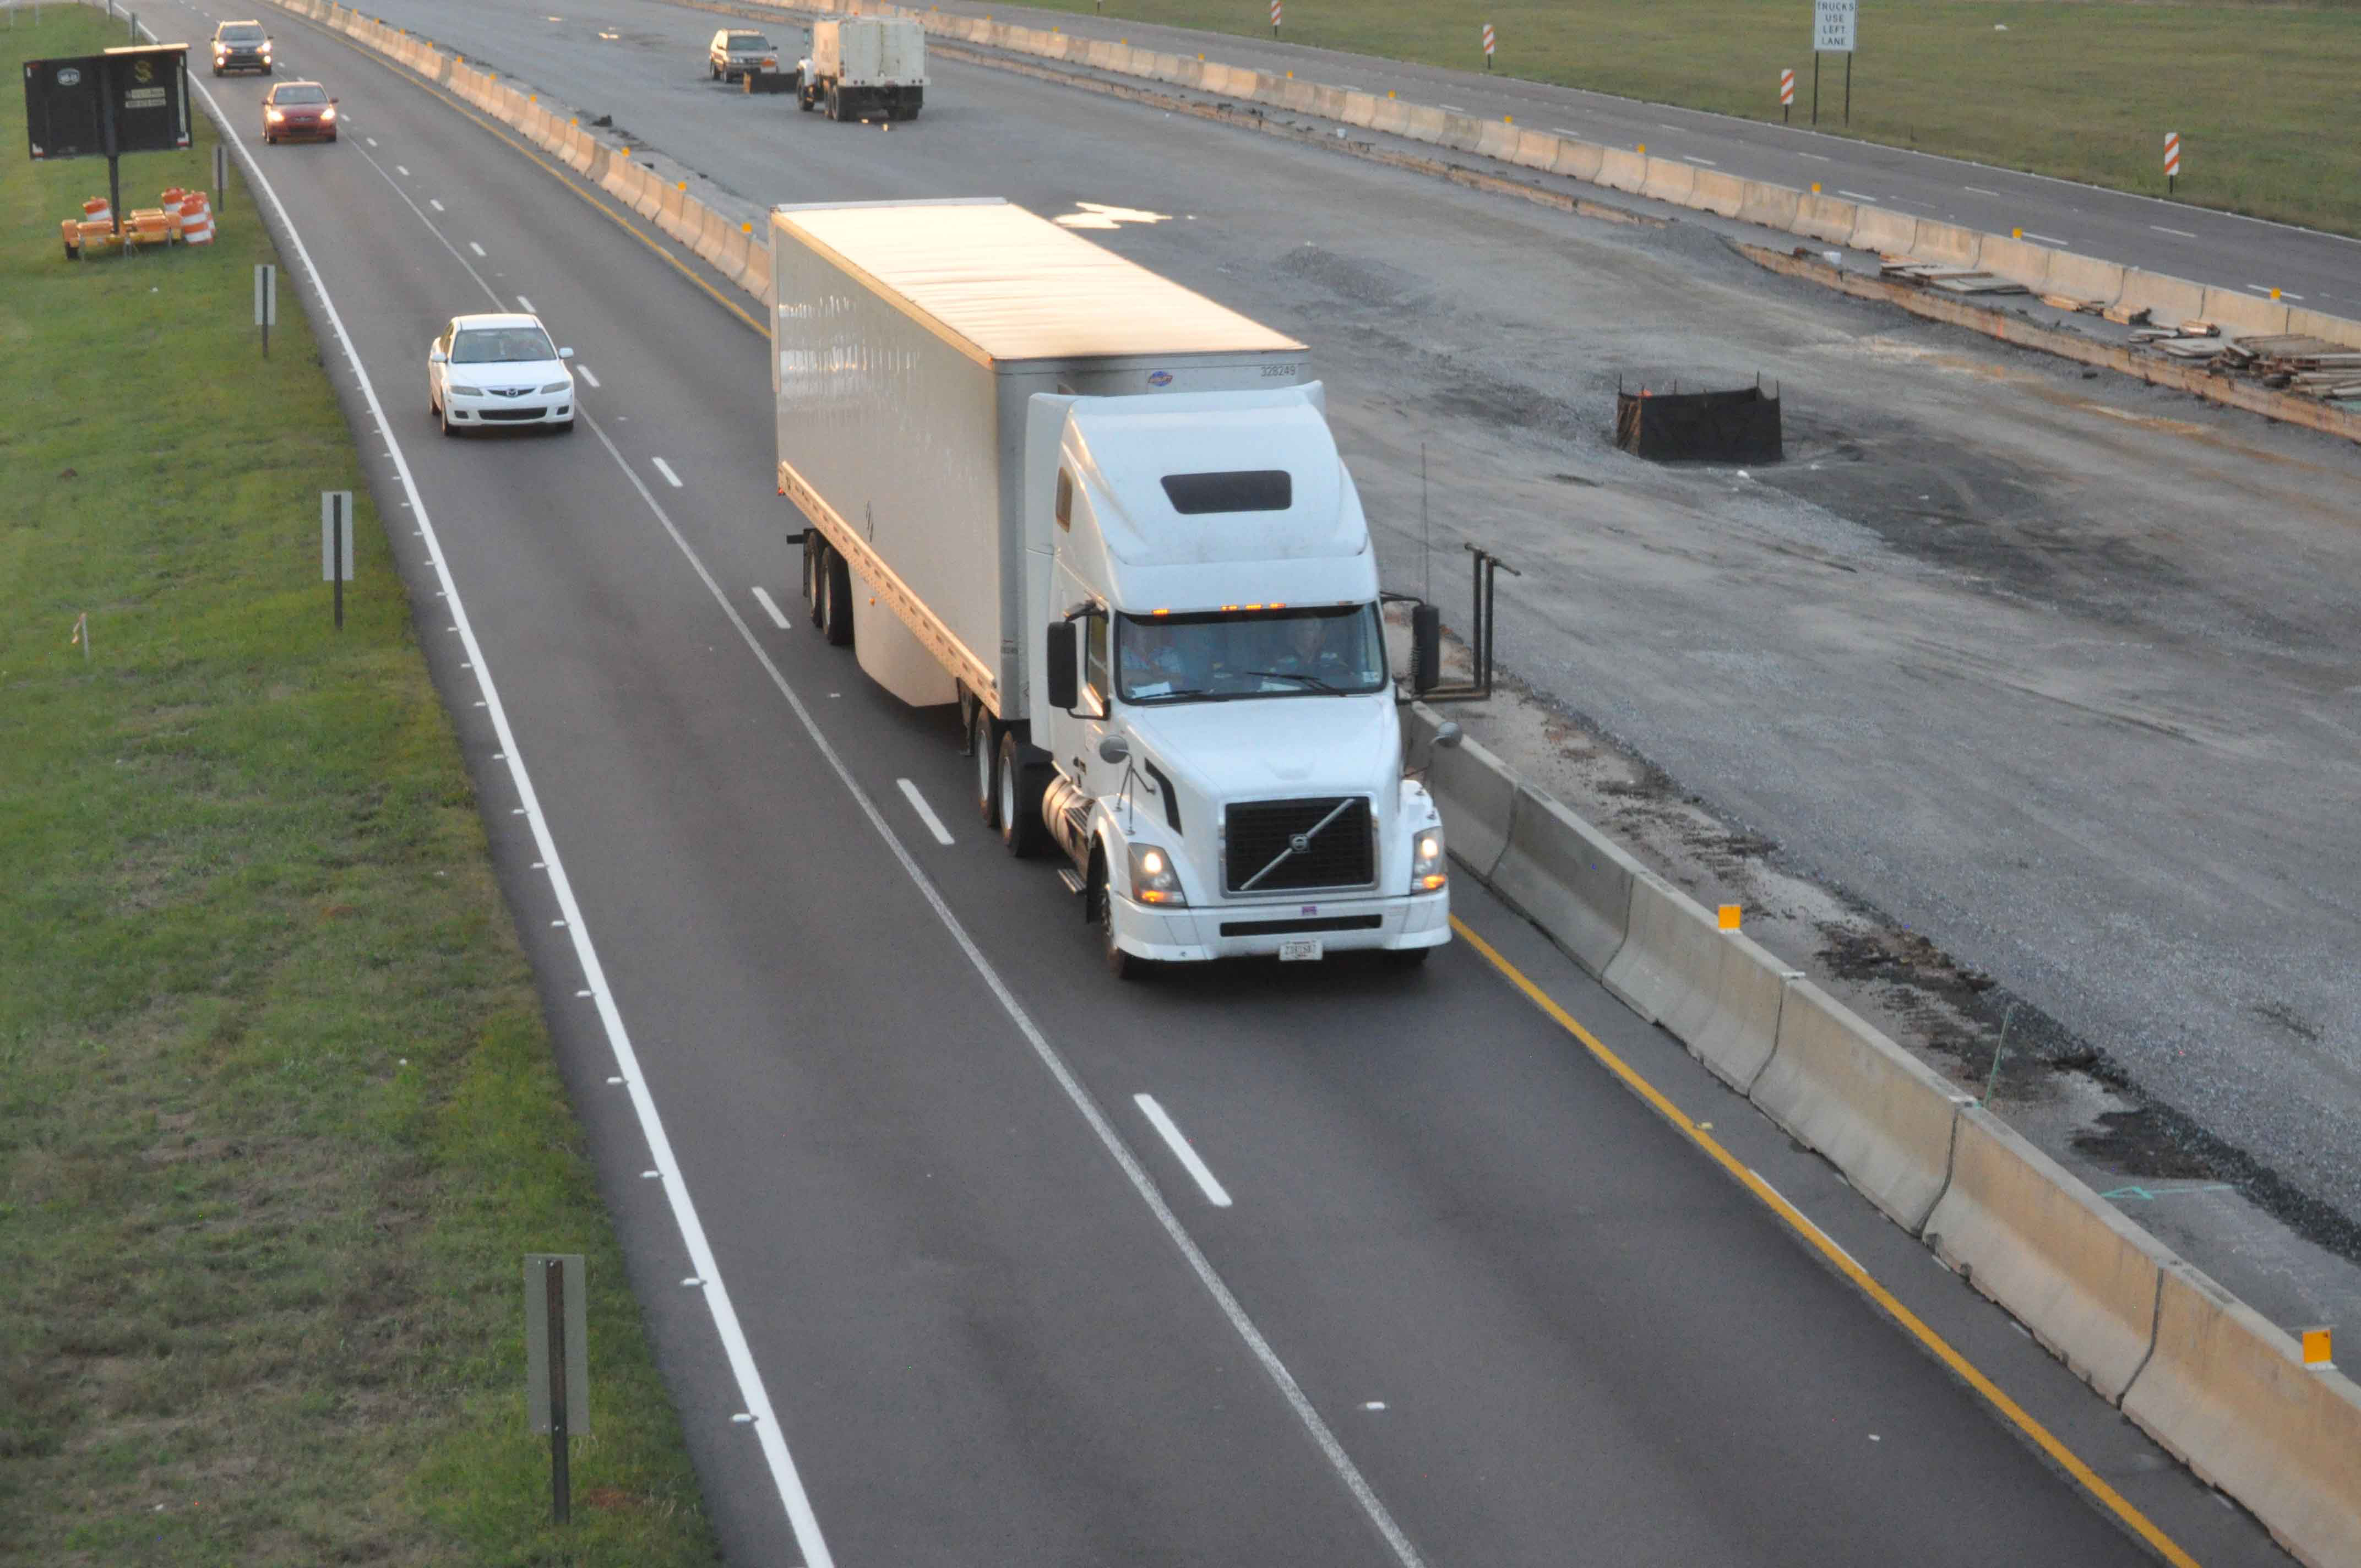 Driver training rule expected this month, speed limiter rule delayed again